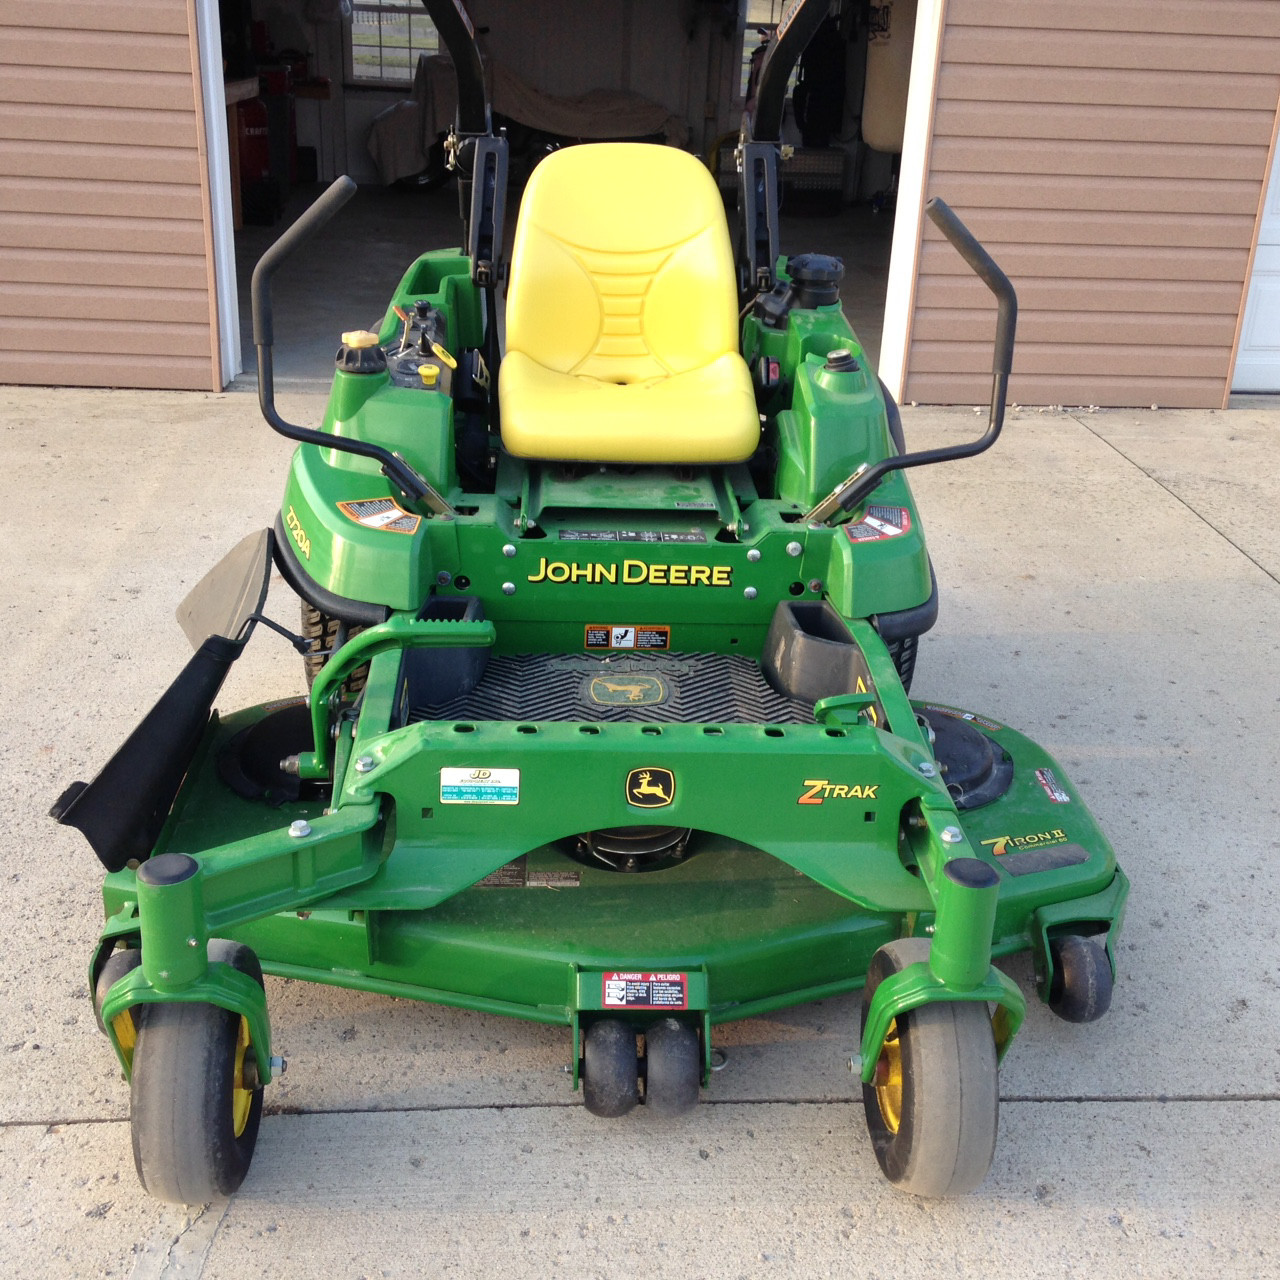 """Lawn Striping Kit on John Deere Z720A with the 60"""" 7 Iron deck without anti-scalp wheel brackets."""